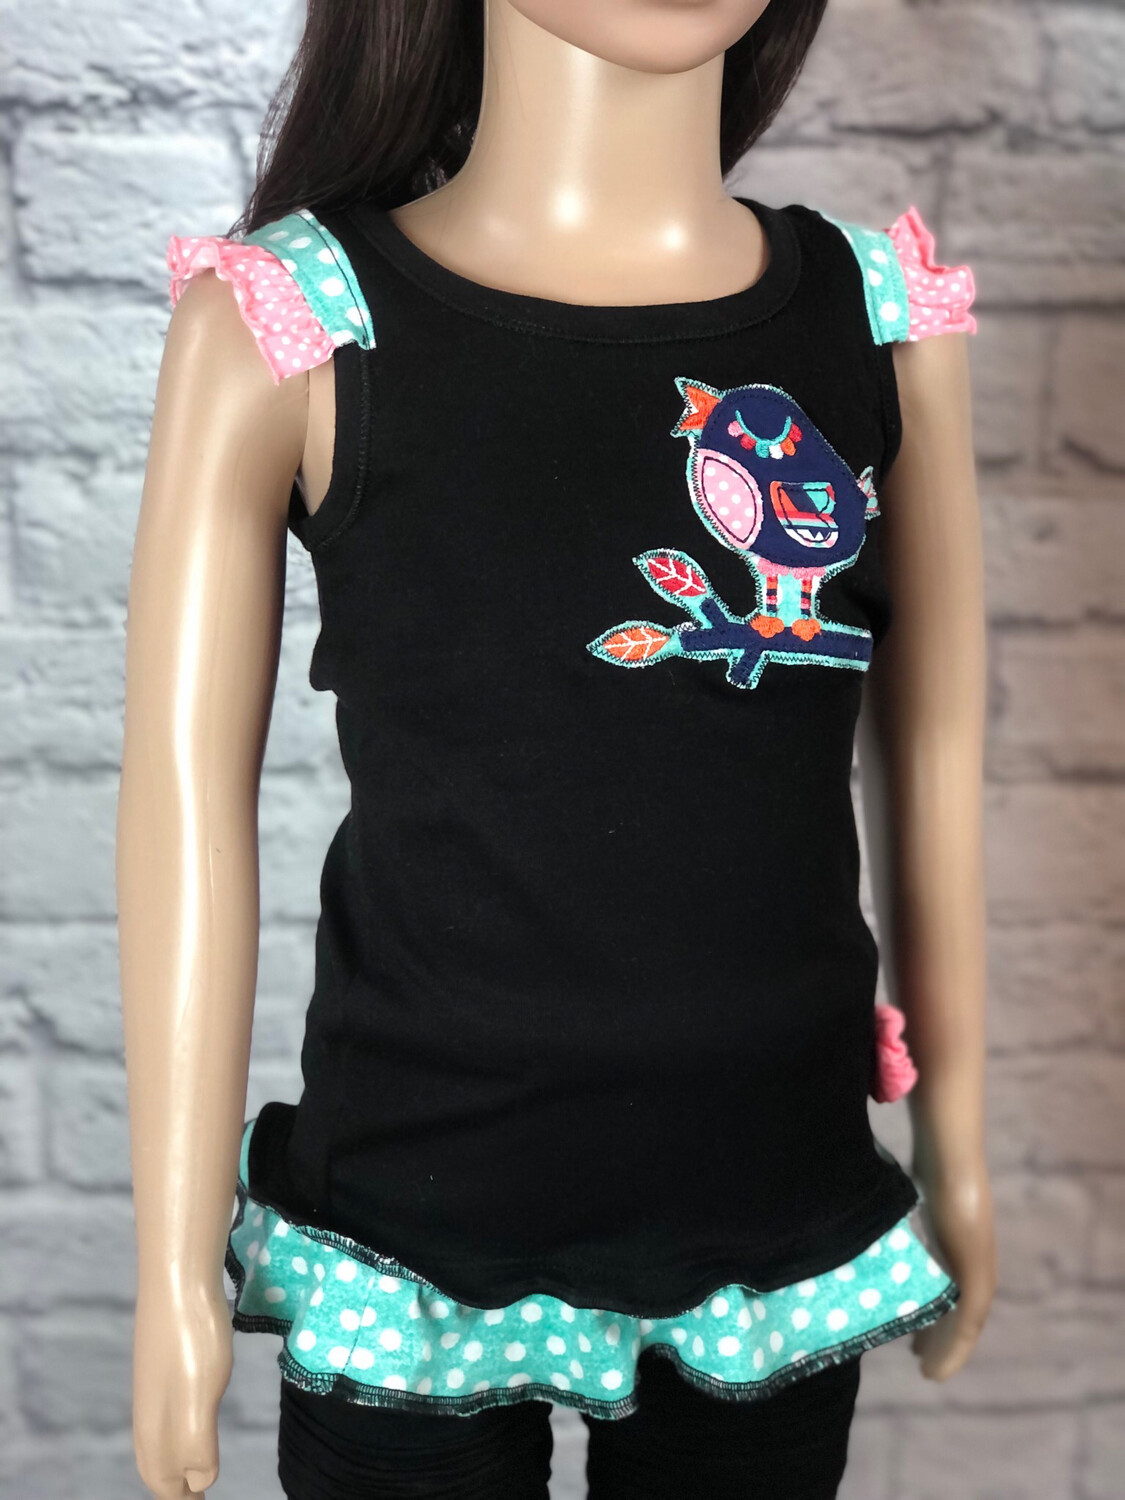 S Threads Kids Upcycled Birdie Ruffle Tank Top Size 5T